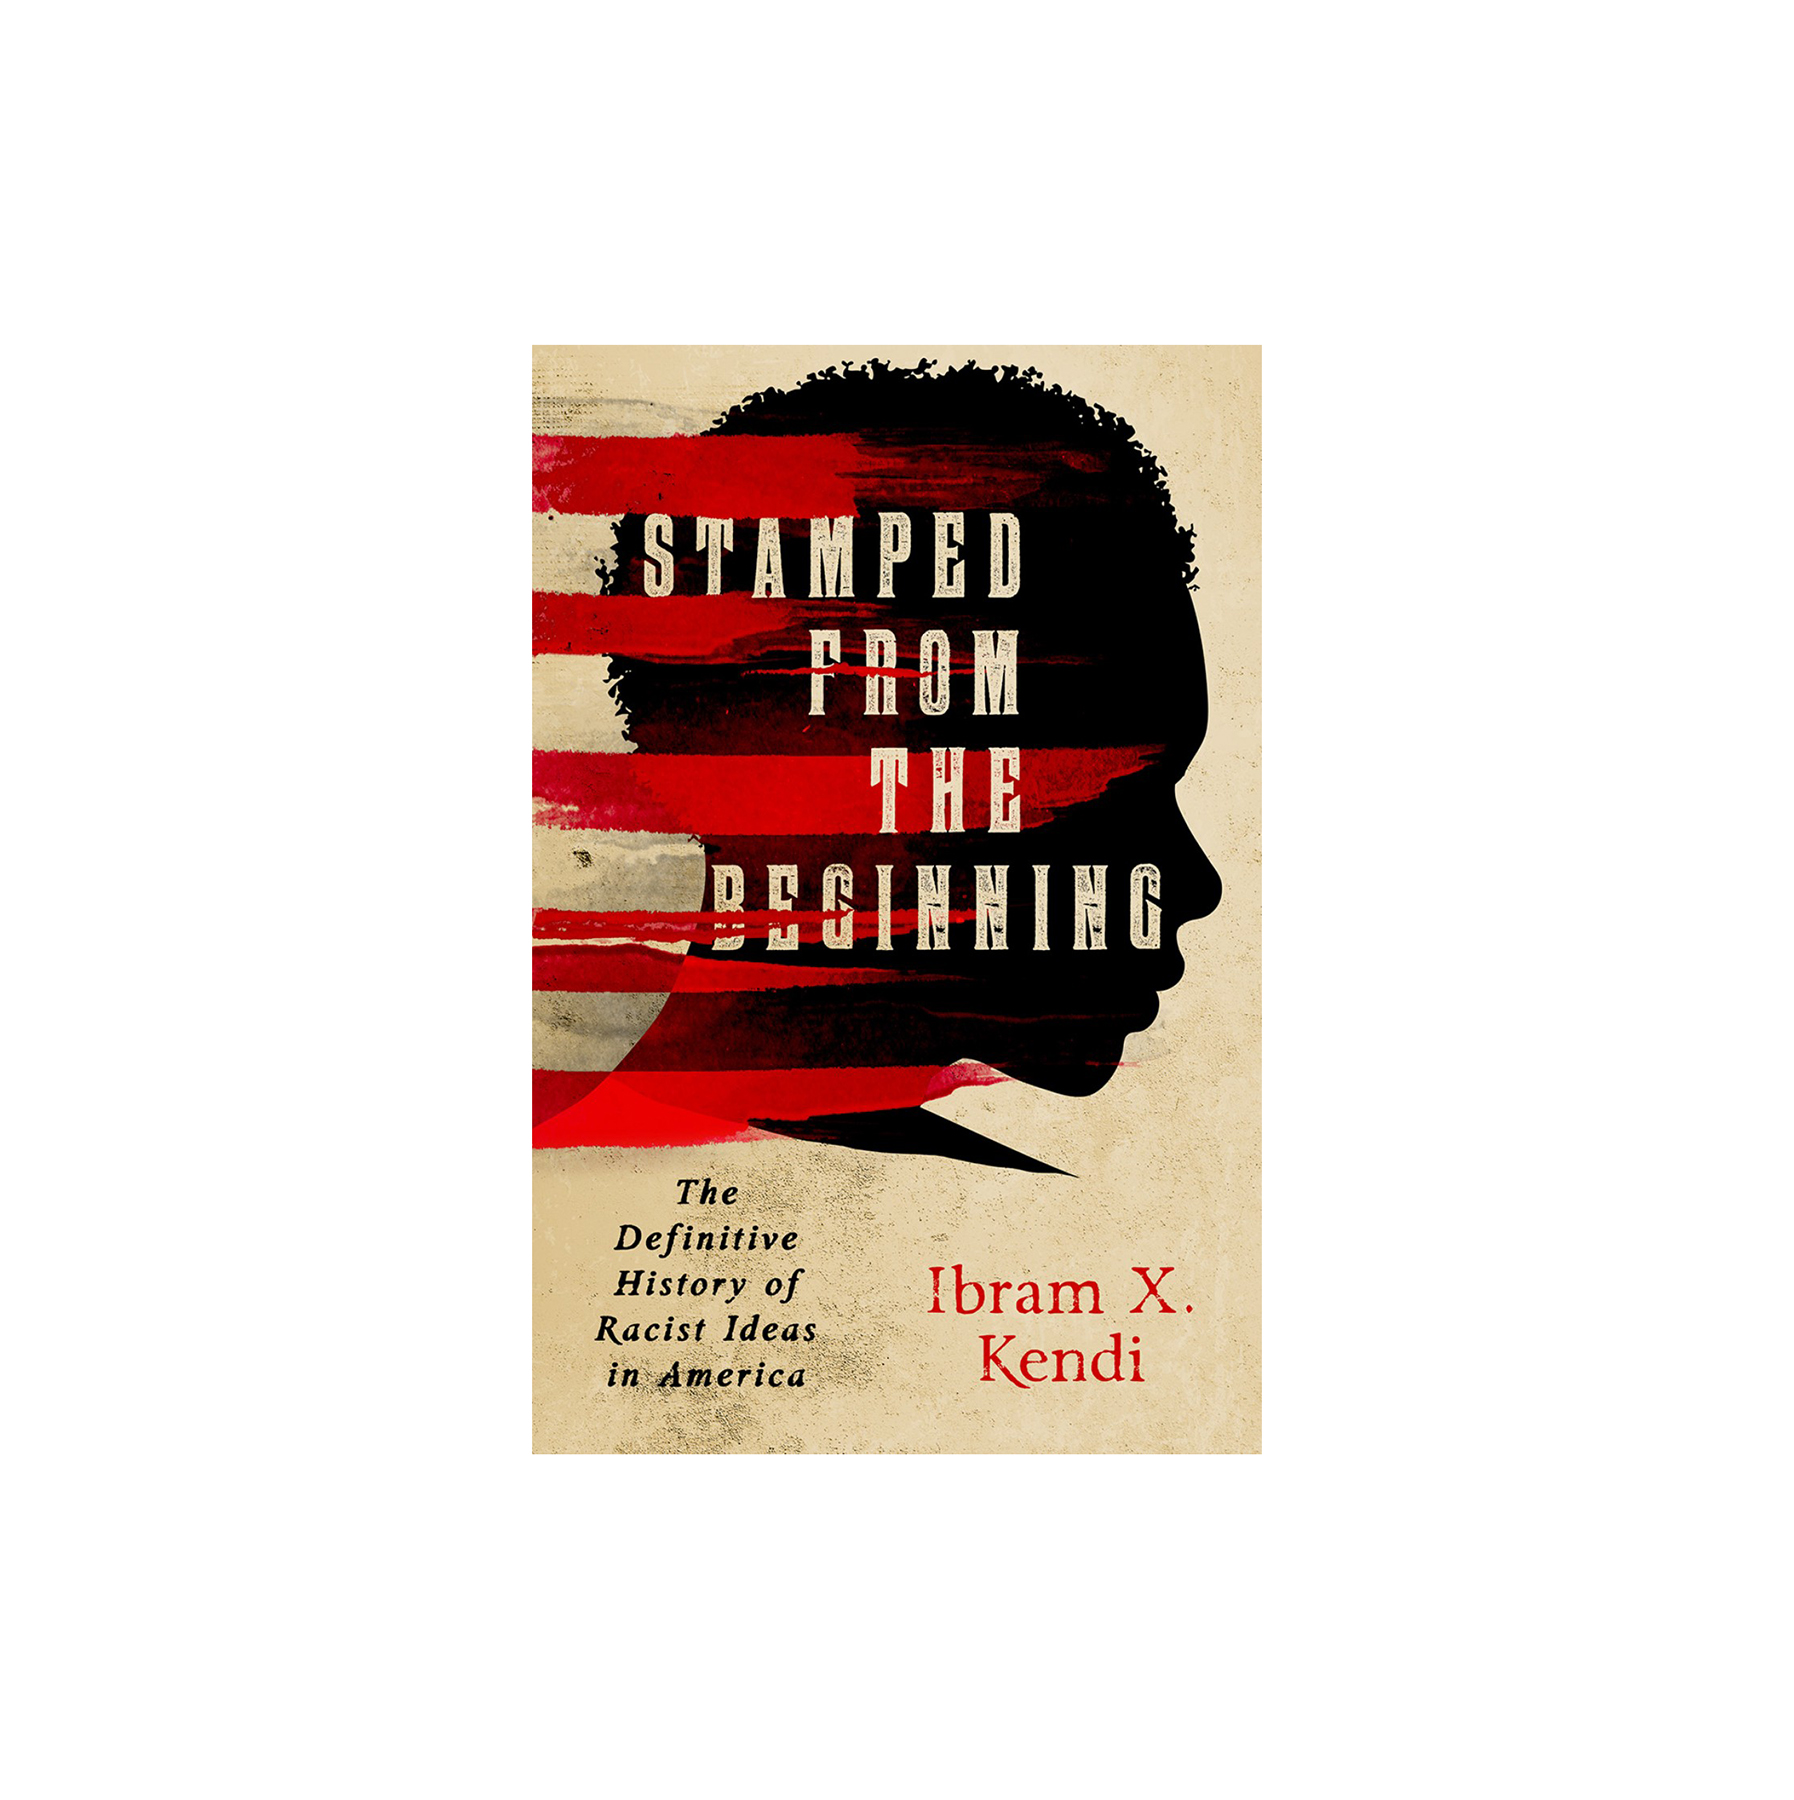 Stamped From the Beginning: The Definitive History of Racist Ideas in America, by Ibram X. Kendi